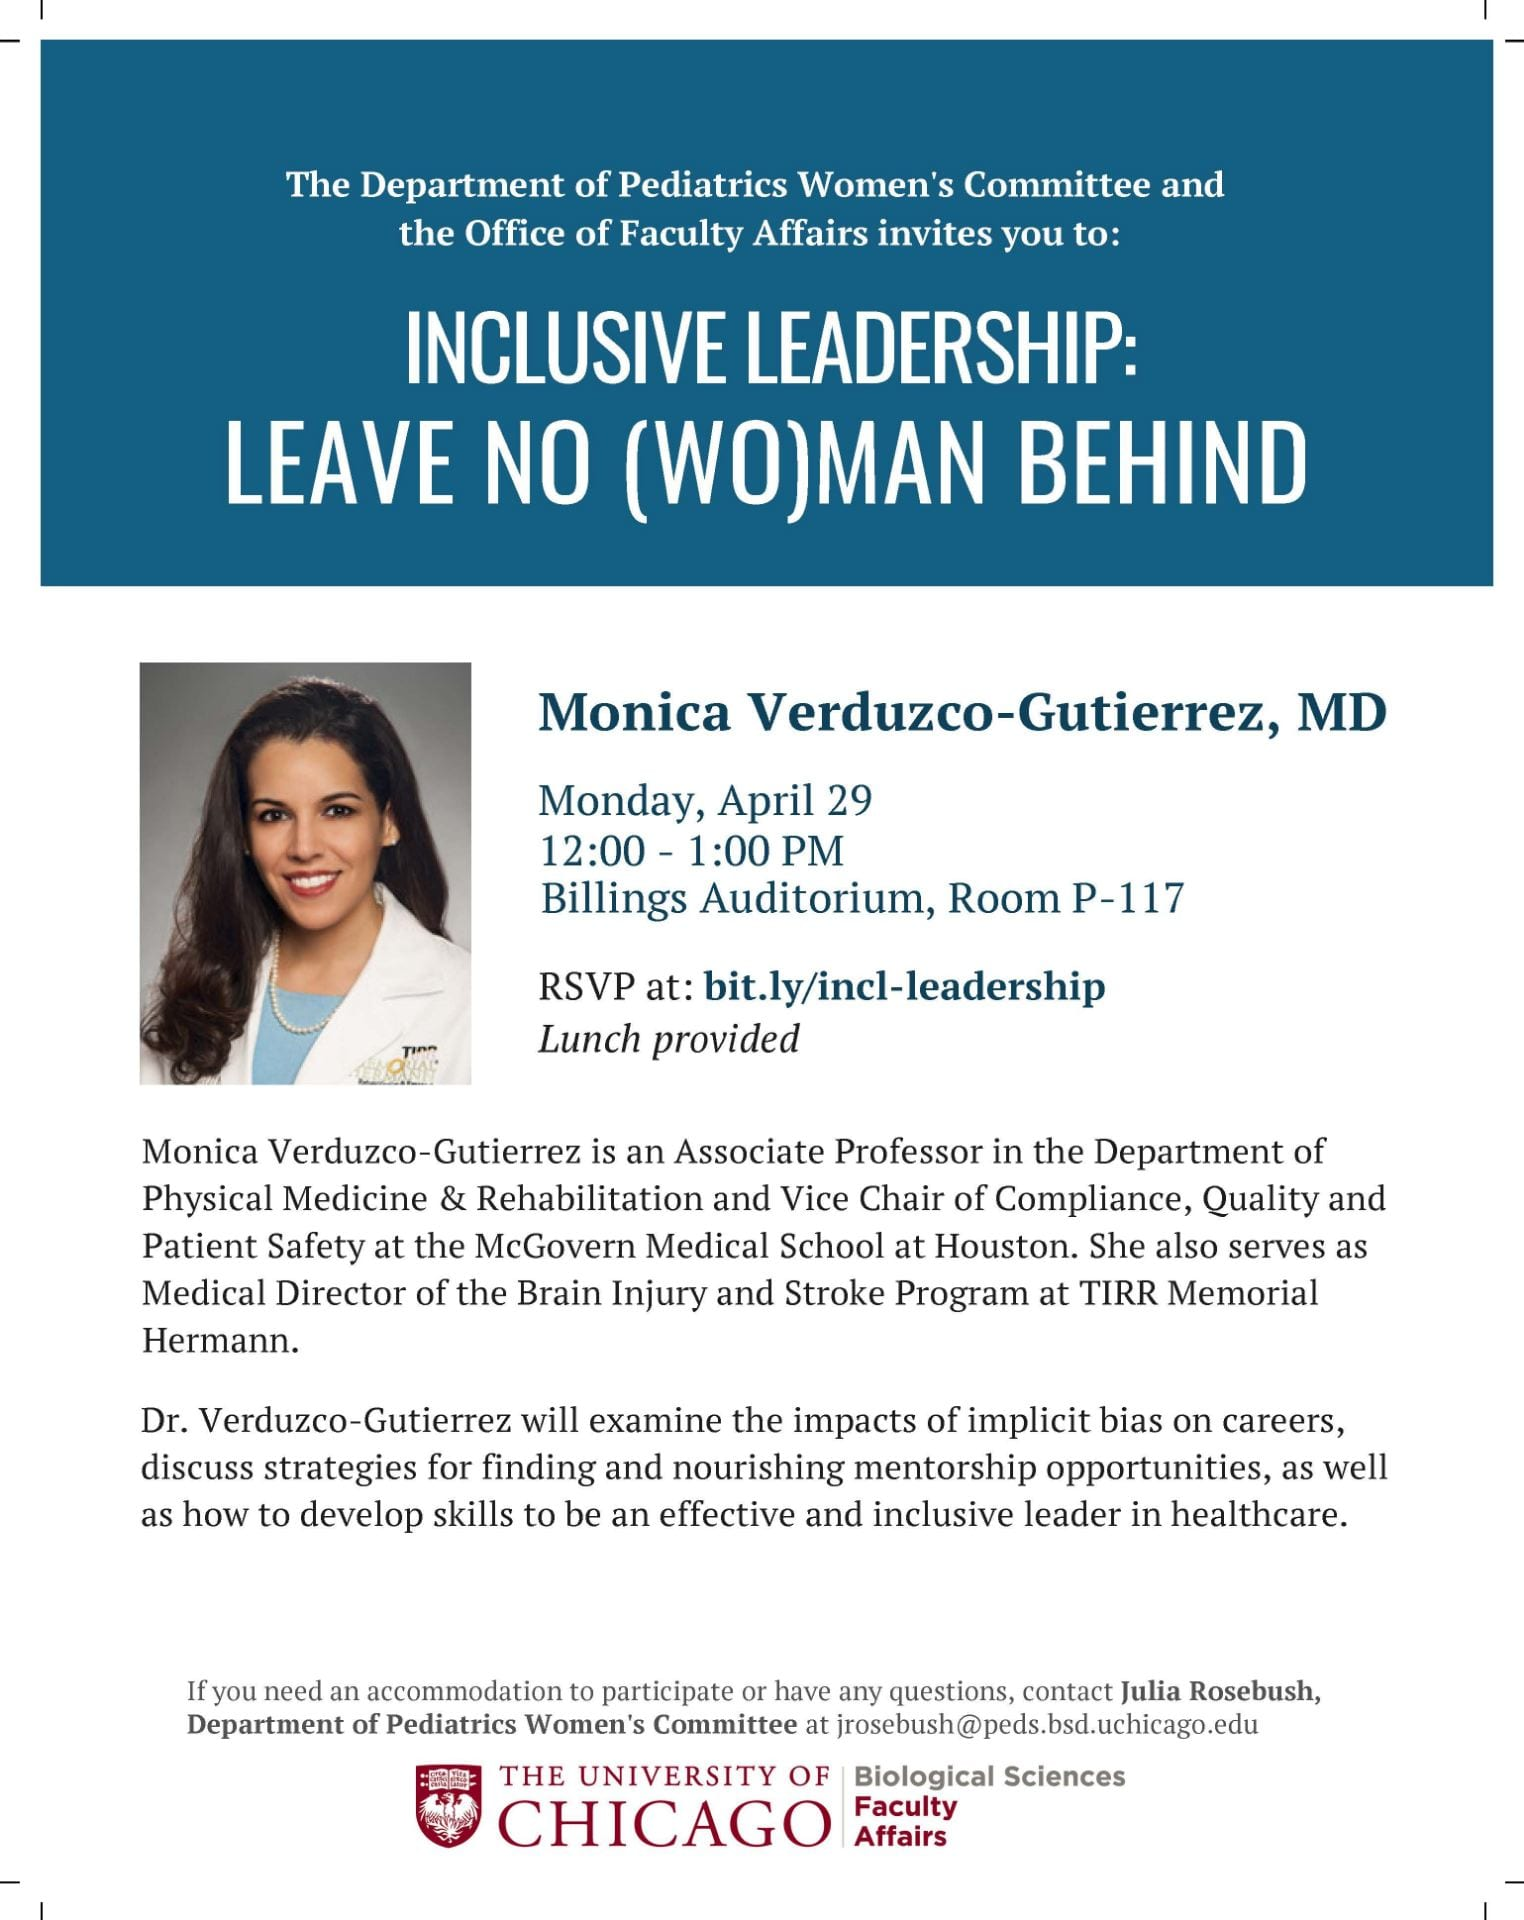 Inclusive Leadership Lecture | BSD Faculty Affairs